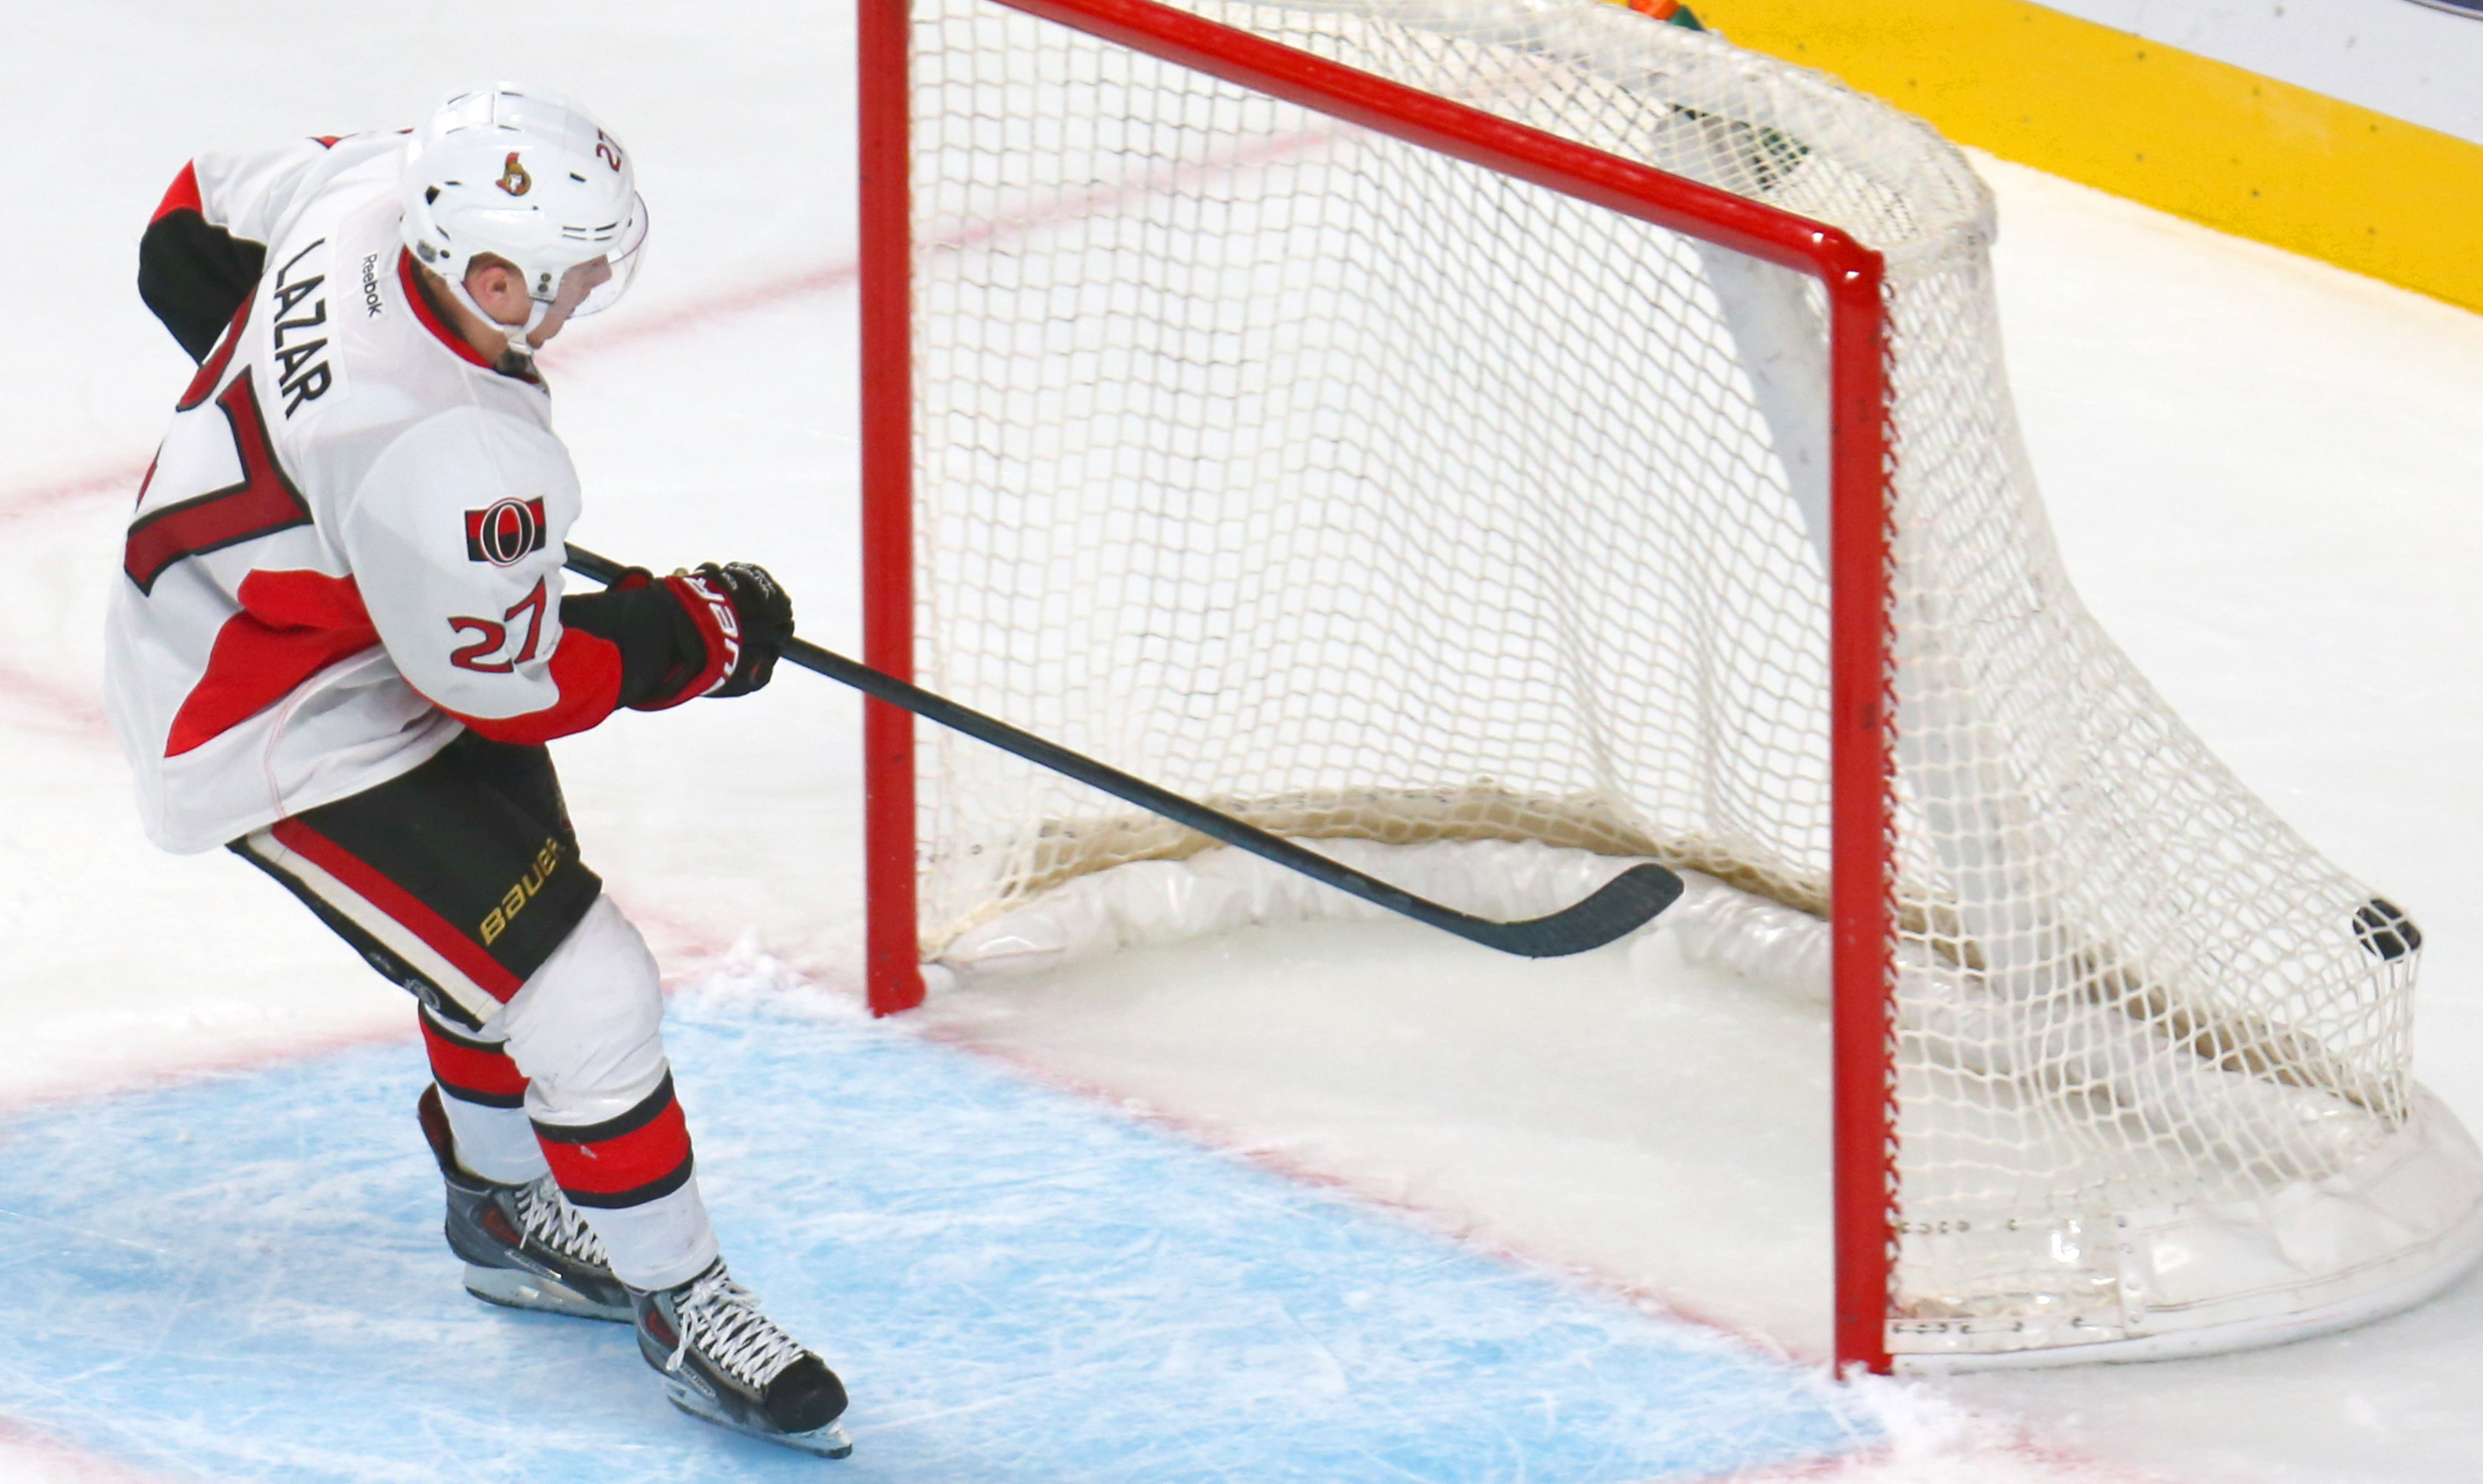 Curtis Lazar seals Ottawa's 4-2 win against Montreal on Saturday night and his place on the team